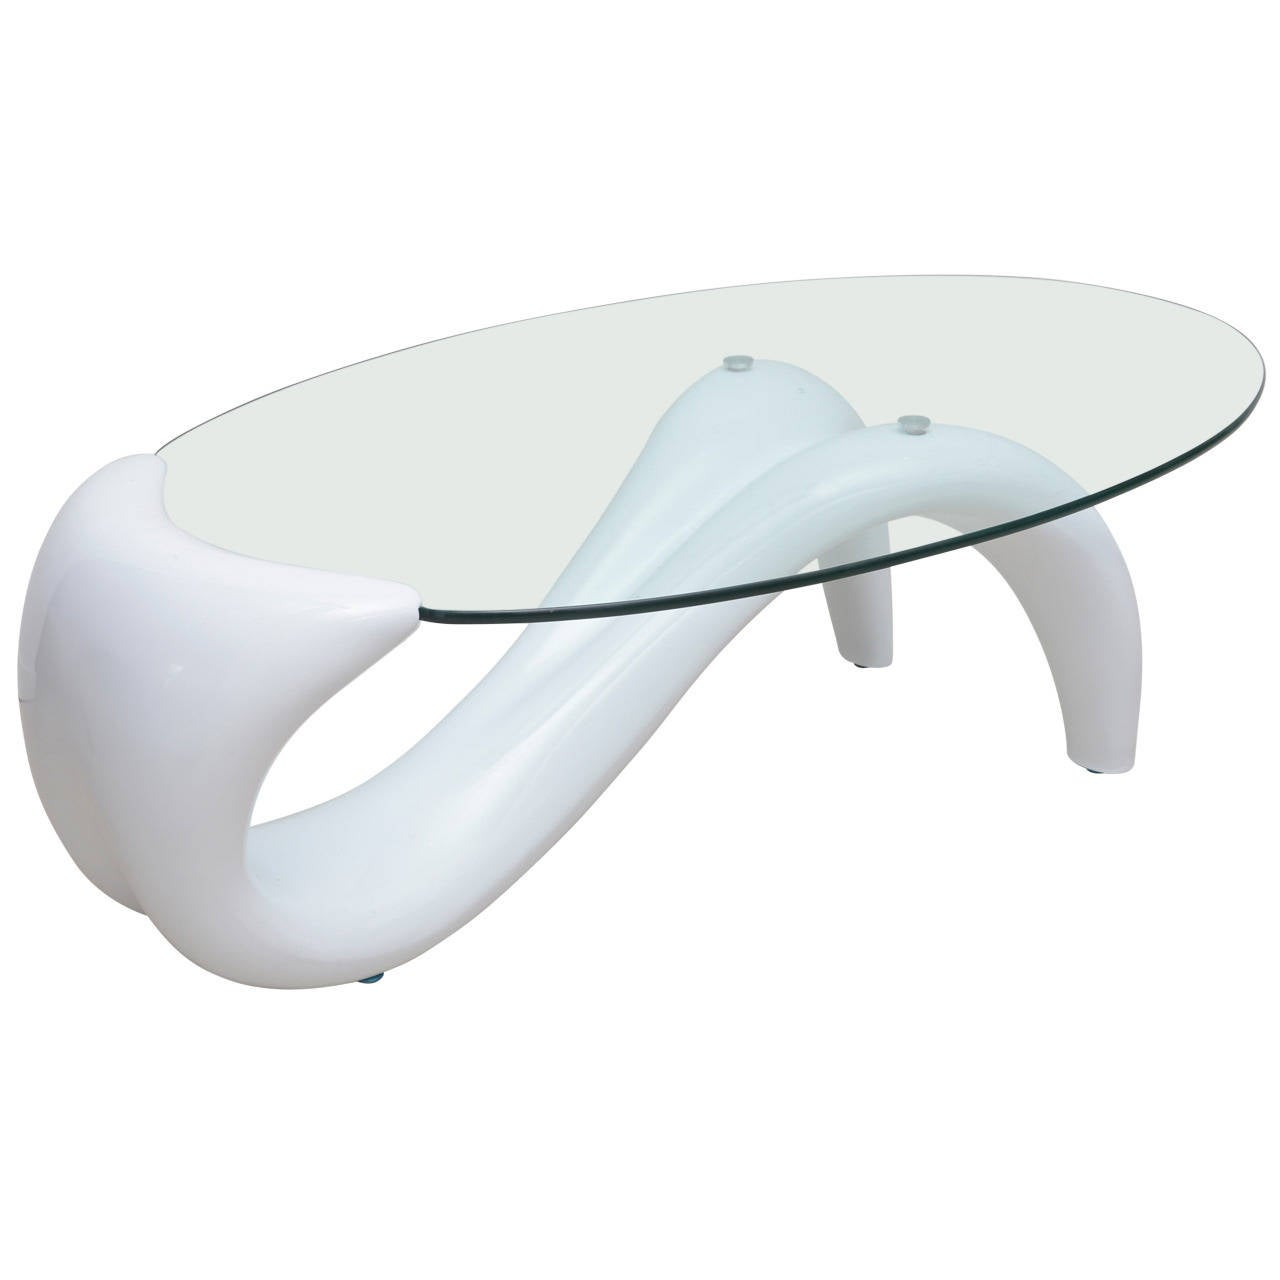 Chic late 20th century minimalist coffee table with oval glass top at 1stdibs Glass oval coffee tables